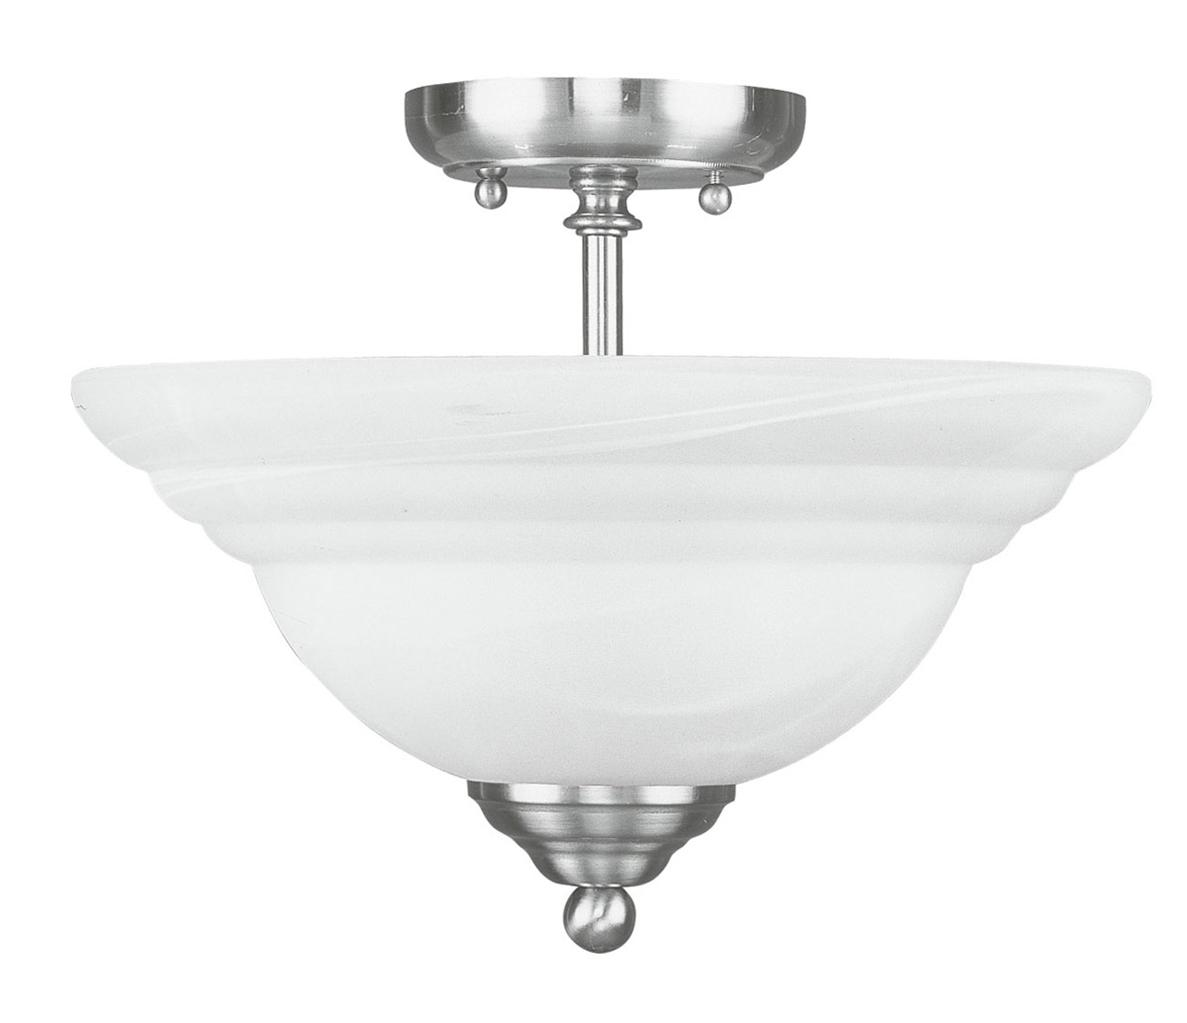 Livex Northport Brushed Nickel Semi Flush Mount Ceiling